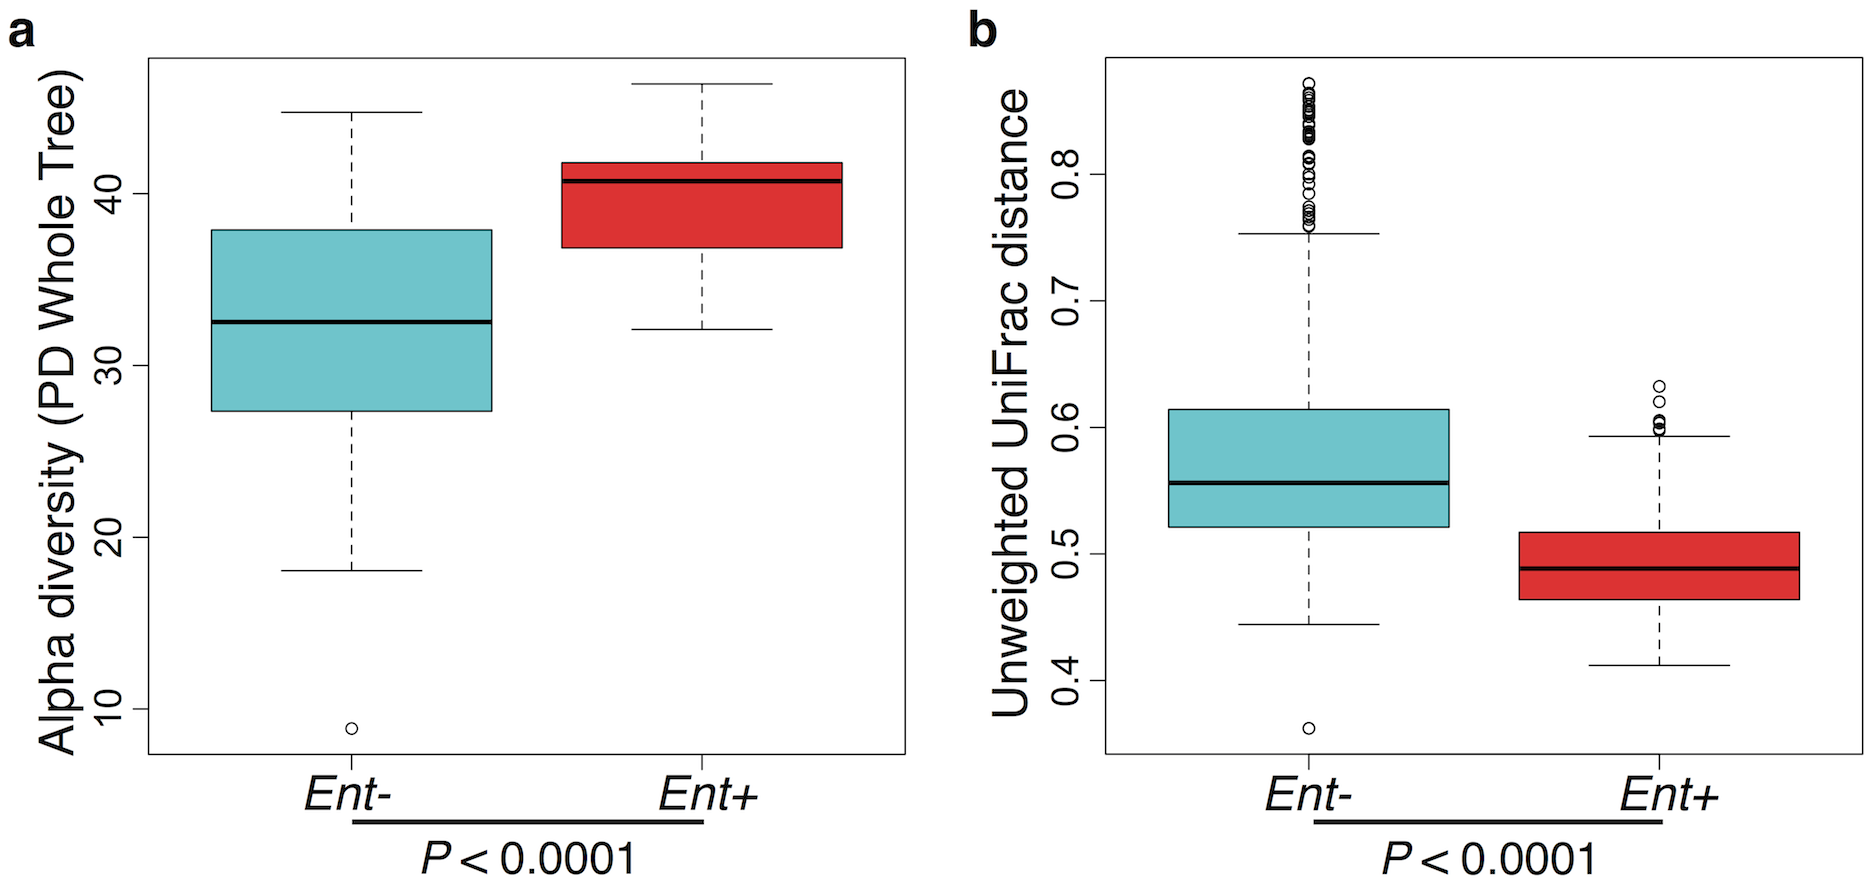 (a) Comparison of alpha diversity for <i>Entamoeba</i> negative (<i>Ent</i>-) and positive (<i>Ent</i>+) individuals using the phylogenetic distance whole tree metric.